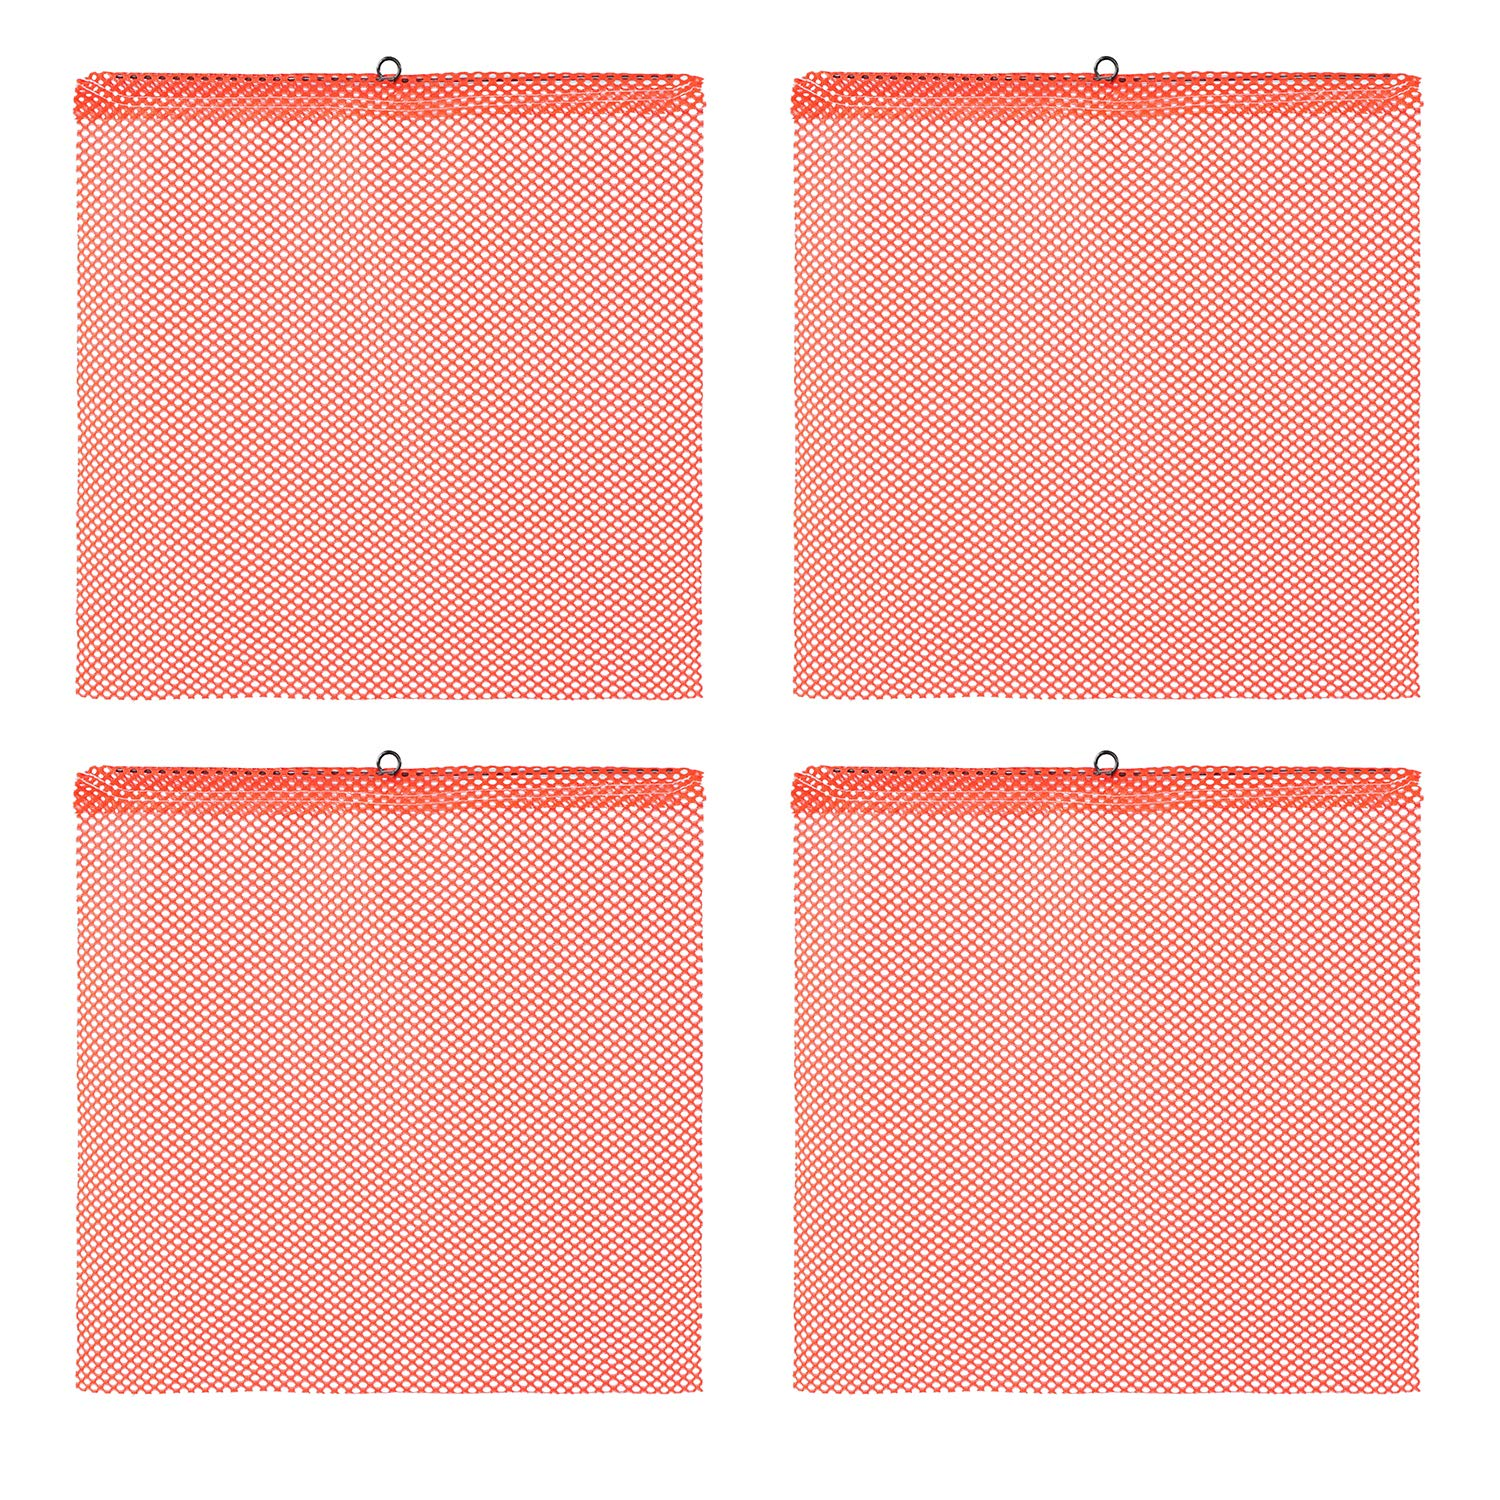 BISupply Towing Safety Flag - 18x18in Trailer Safety Flags for Truck Cargo and Pedestrian Crossings, 4Pk Orange Flags